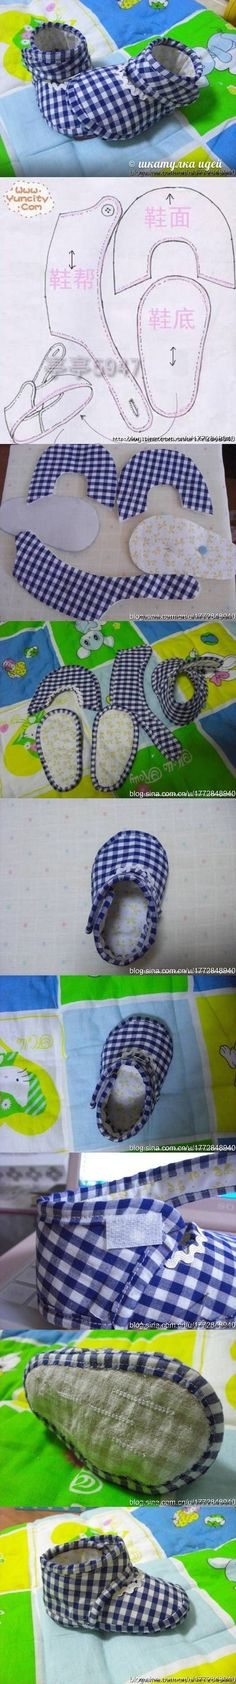 DIY Slippers for Babies DIY Projects: